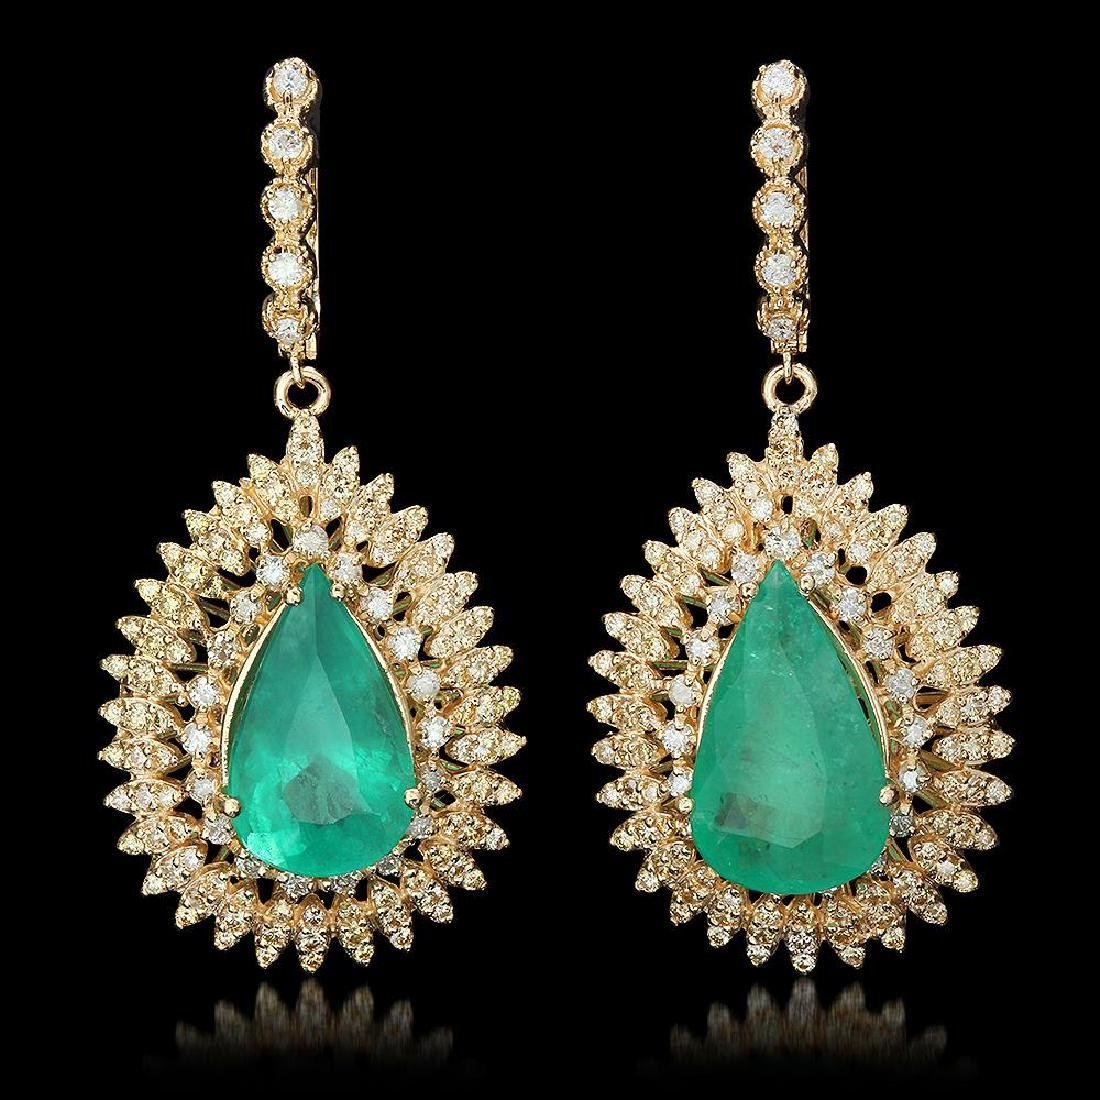 14K Gold 13.73ct Emerald 4.01ct Diamond Earrings